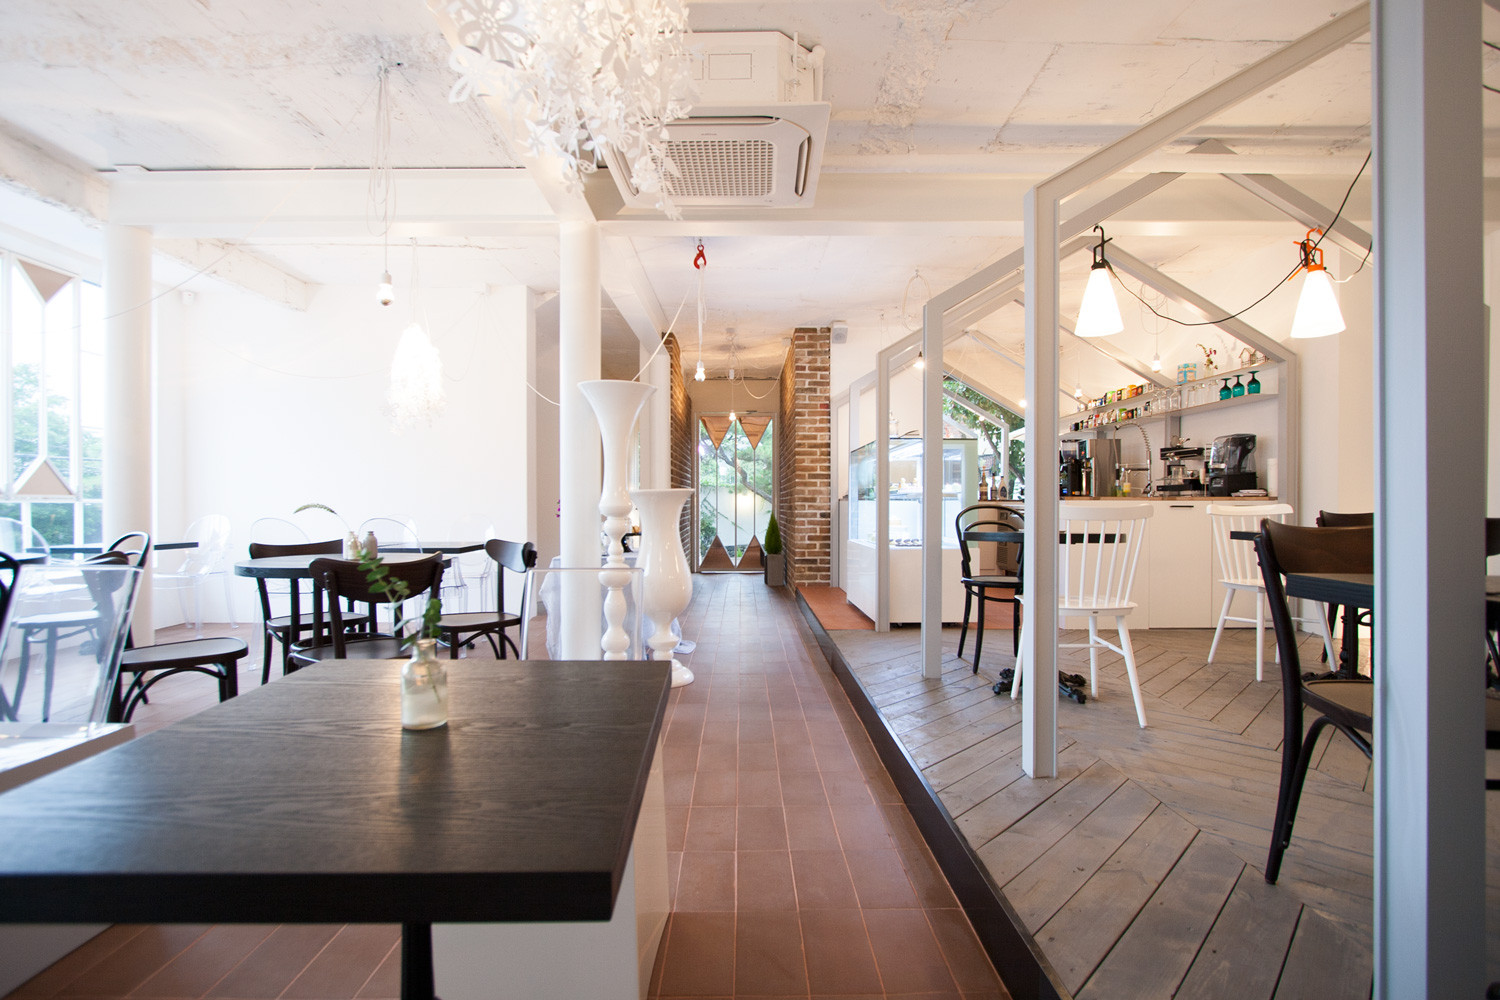 Loisir nordic bros design community archdaily for Design hotel in seoul